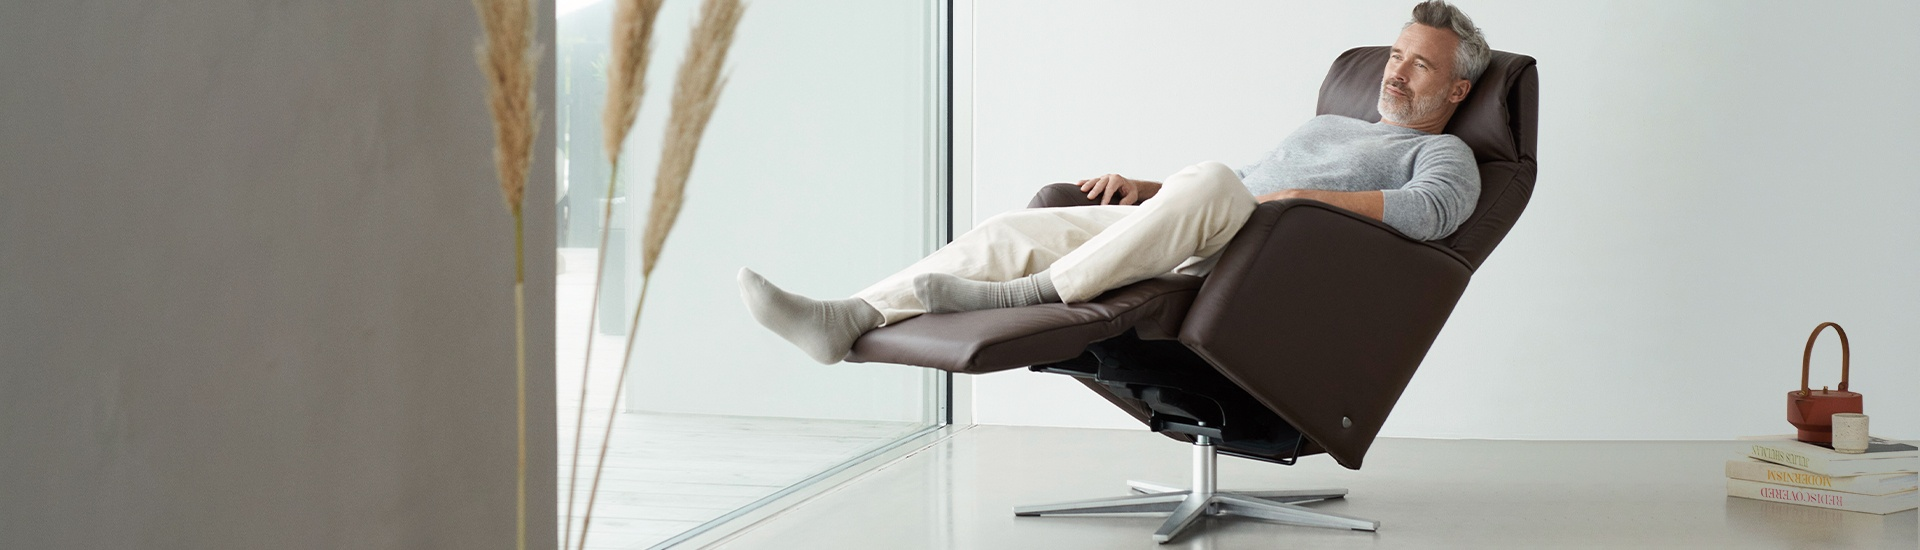 Discover the new Scott from Stressless